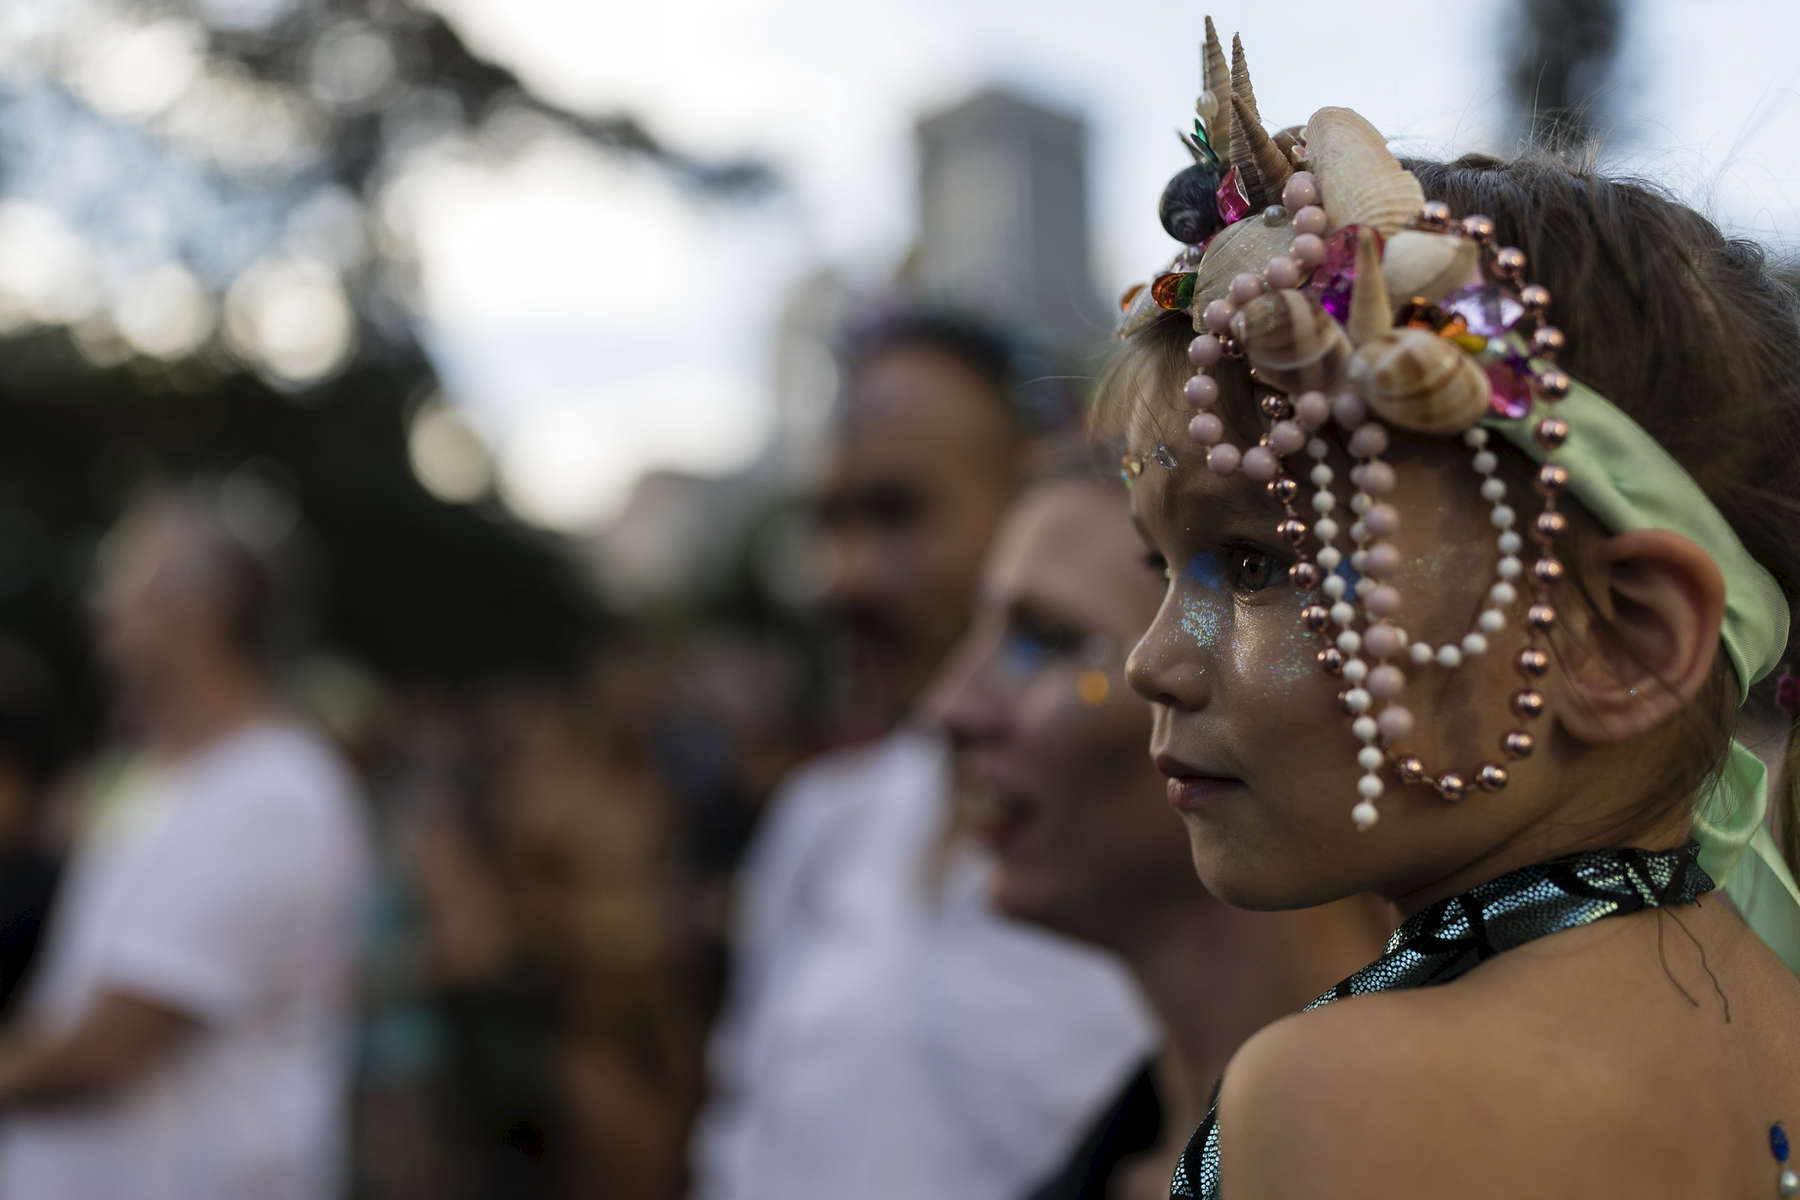 SYDNEY, NEW SOUTH WALES - MARCH 03: A young girl watches on during the 2018 Sydney Gay & Lesbian Mardi Gras Parade on March 3, 2018 in Sydney, Australia.  The Sydney Mardi Gras parade began in 1978 as a march and commemoration of the 1969 Stonewall Riots of New York. It is an annual event promoting awareness of gay, lesbian, bisexual and transgender issues and themes.  (Photo by Brook Mitchell/Getty Images)